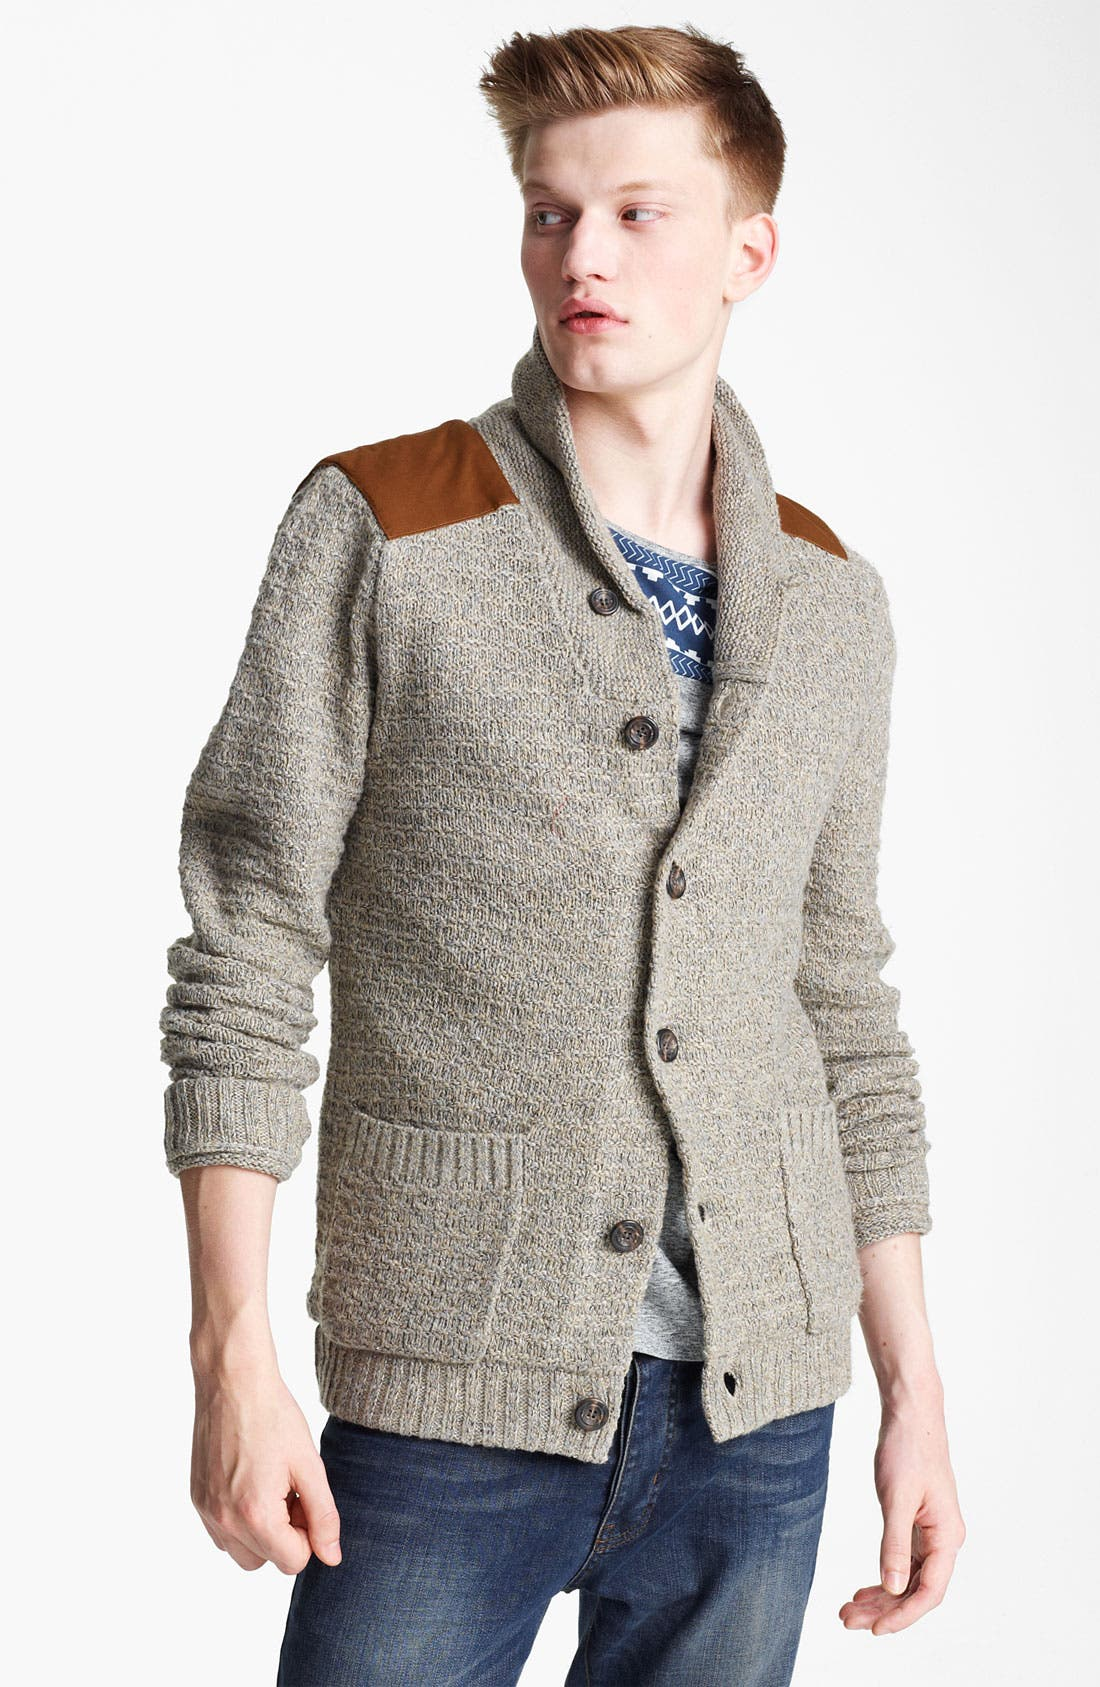 Alternate Image 1 Selected - Topman 'Borg' Shawl Collar Cardigan